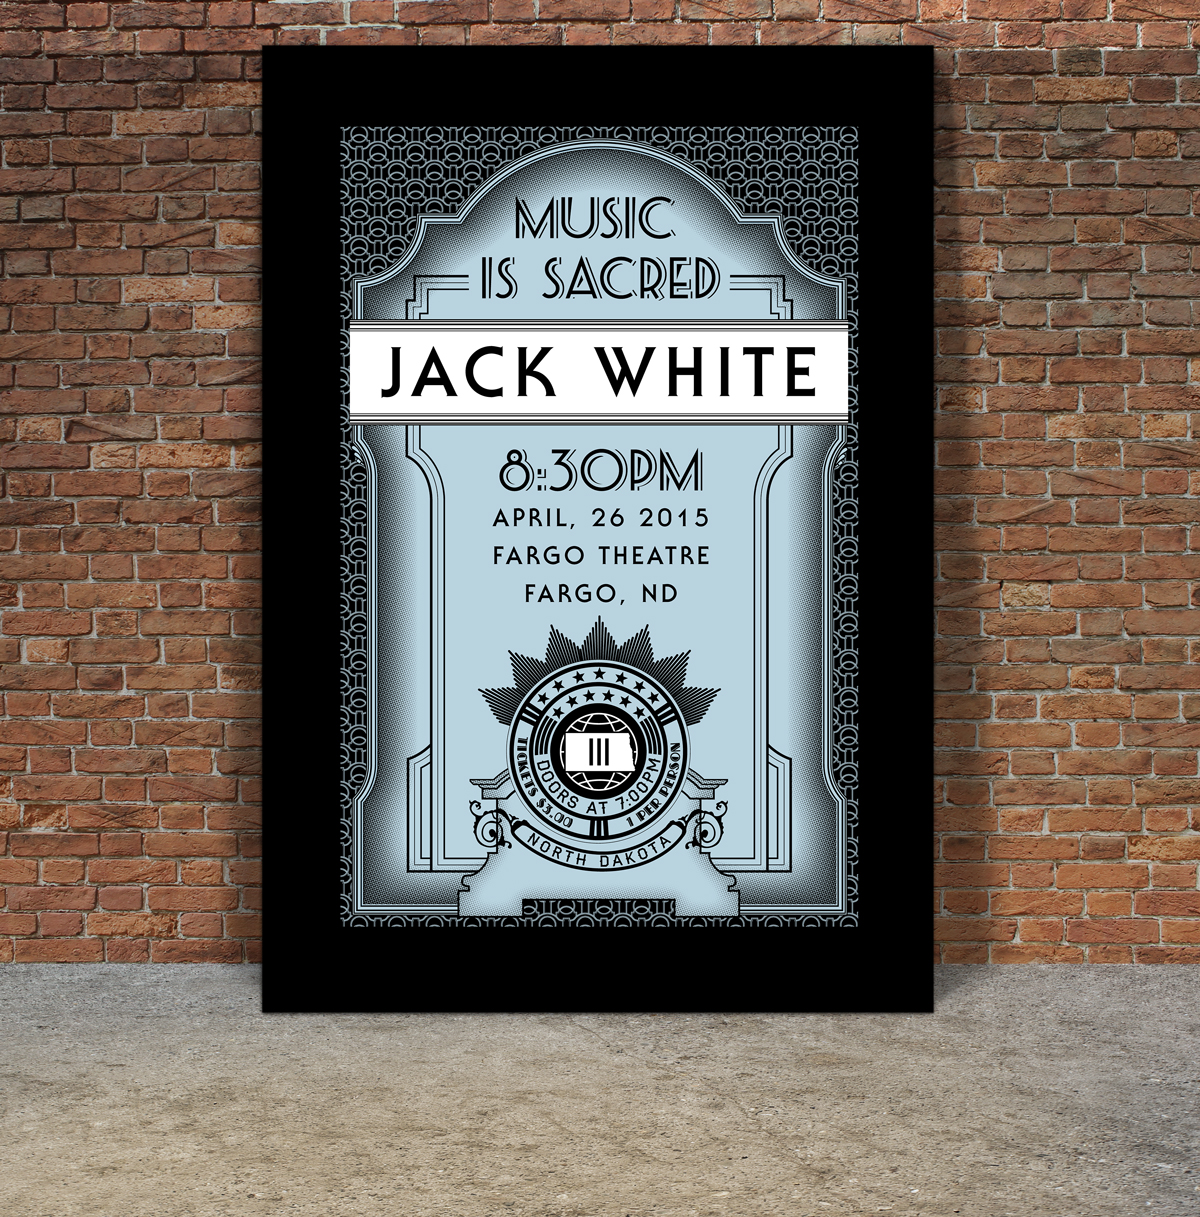 Jack-White-Poster-Layout.jpg